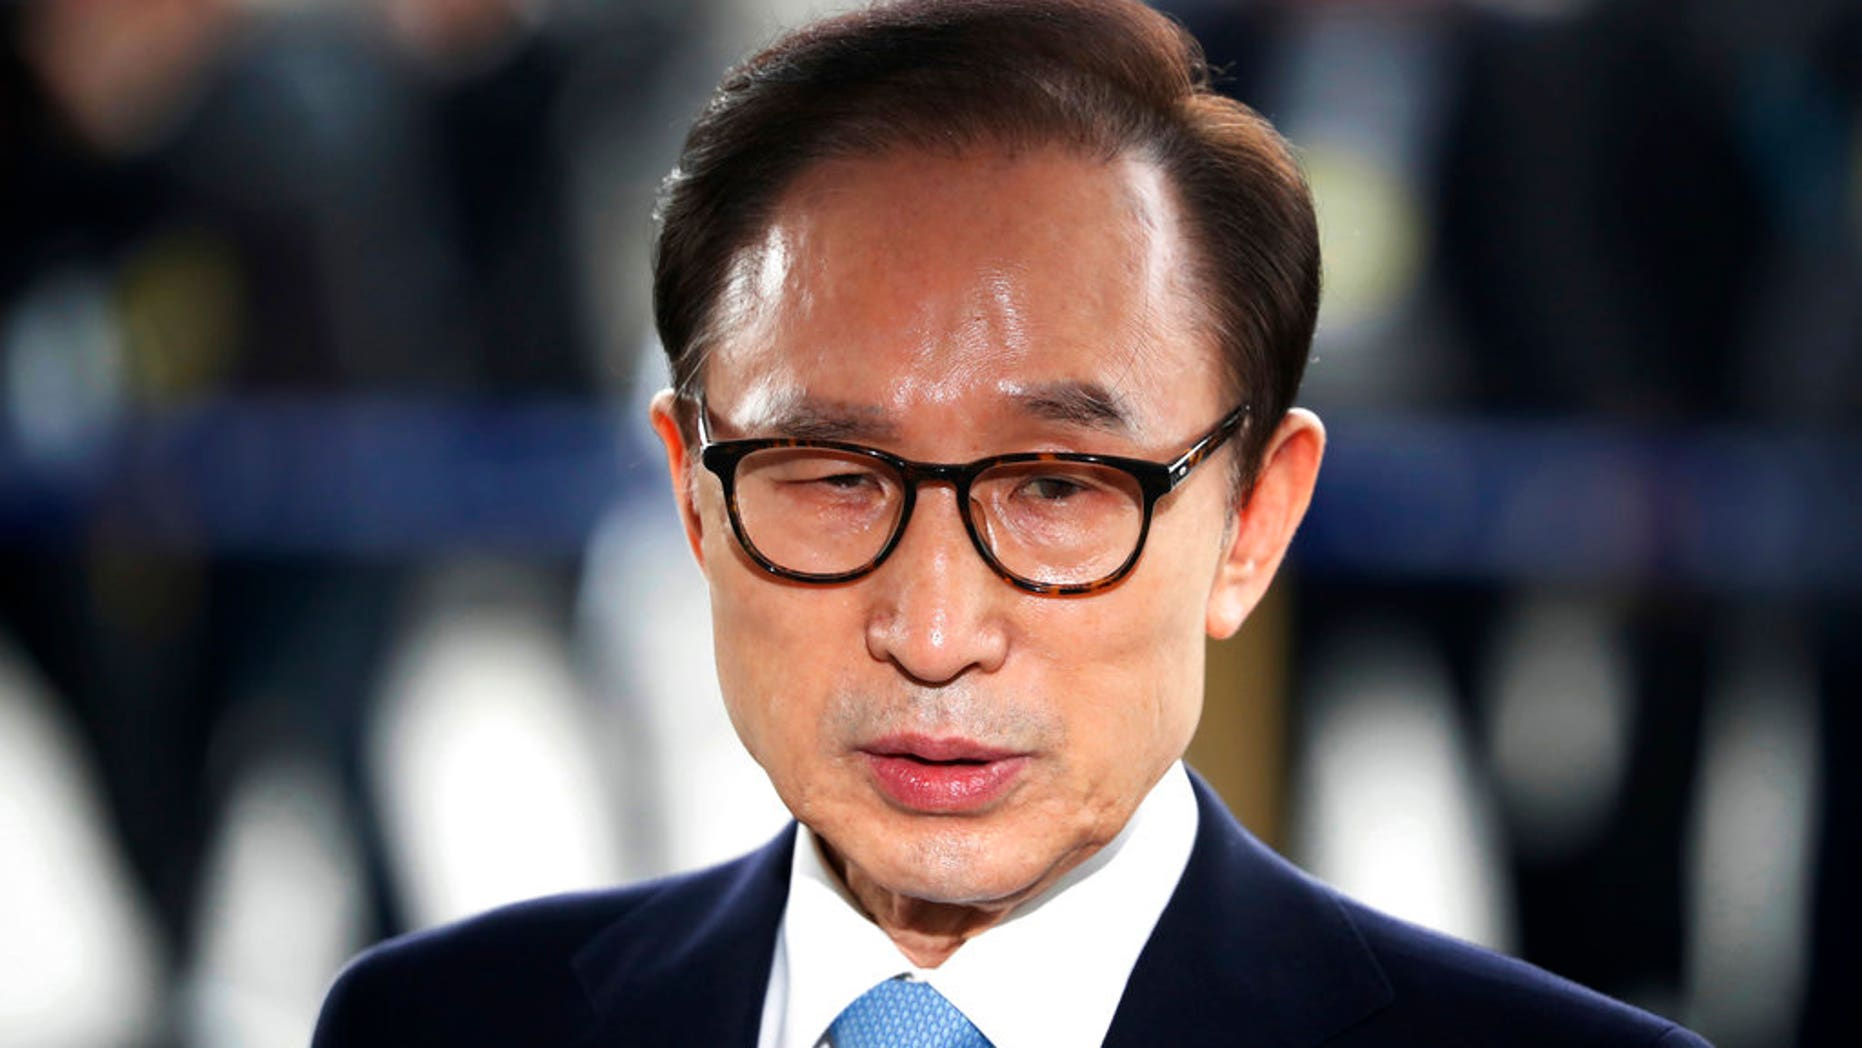 South Korea ex-president Lee jailed for 15 years over corruption